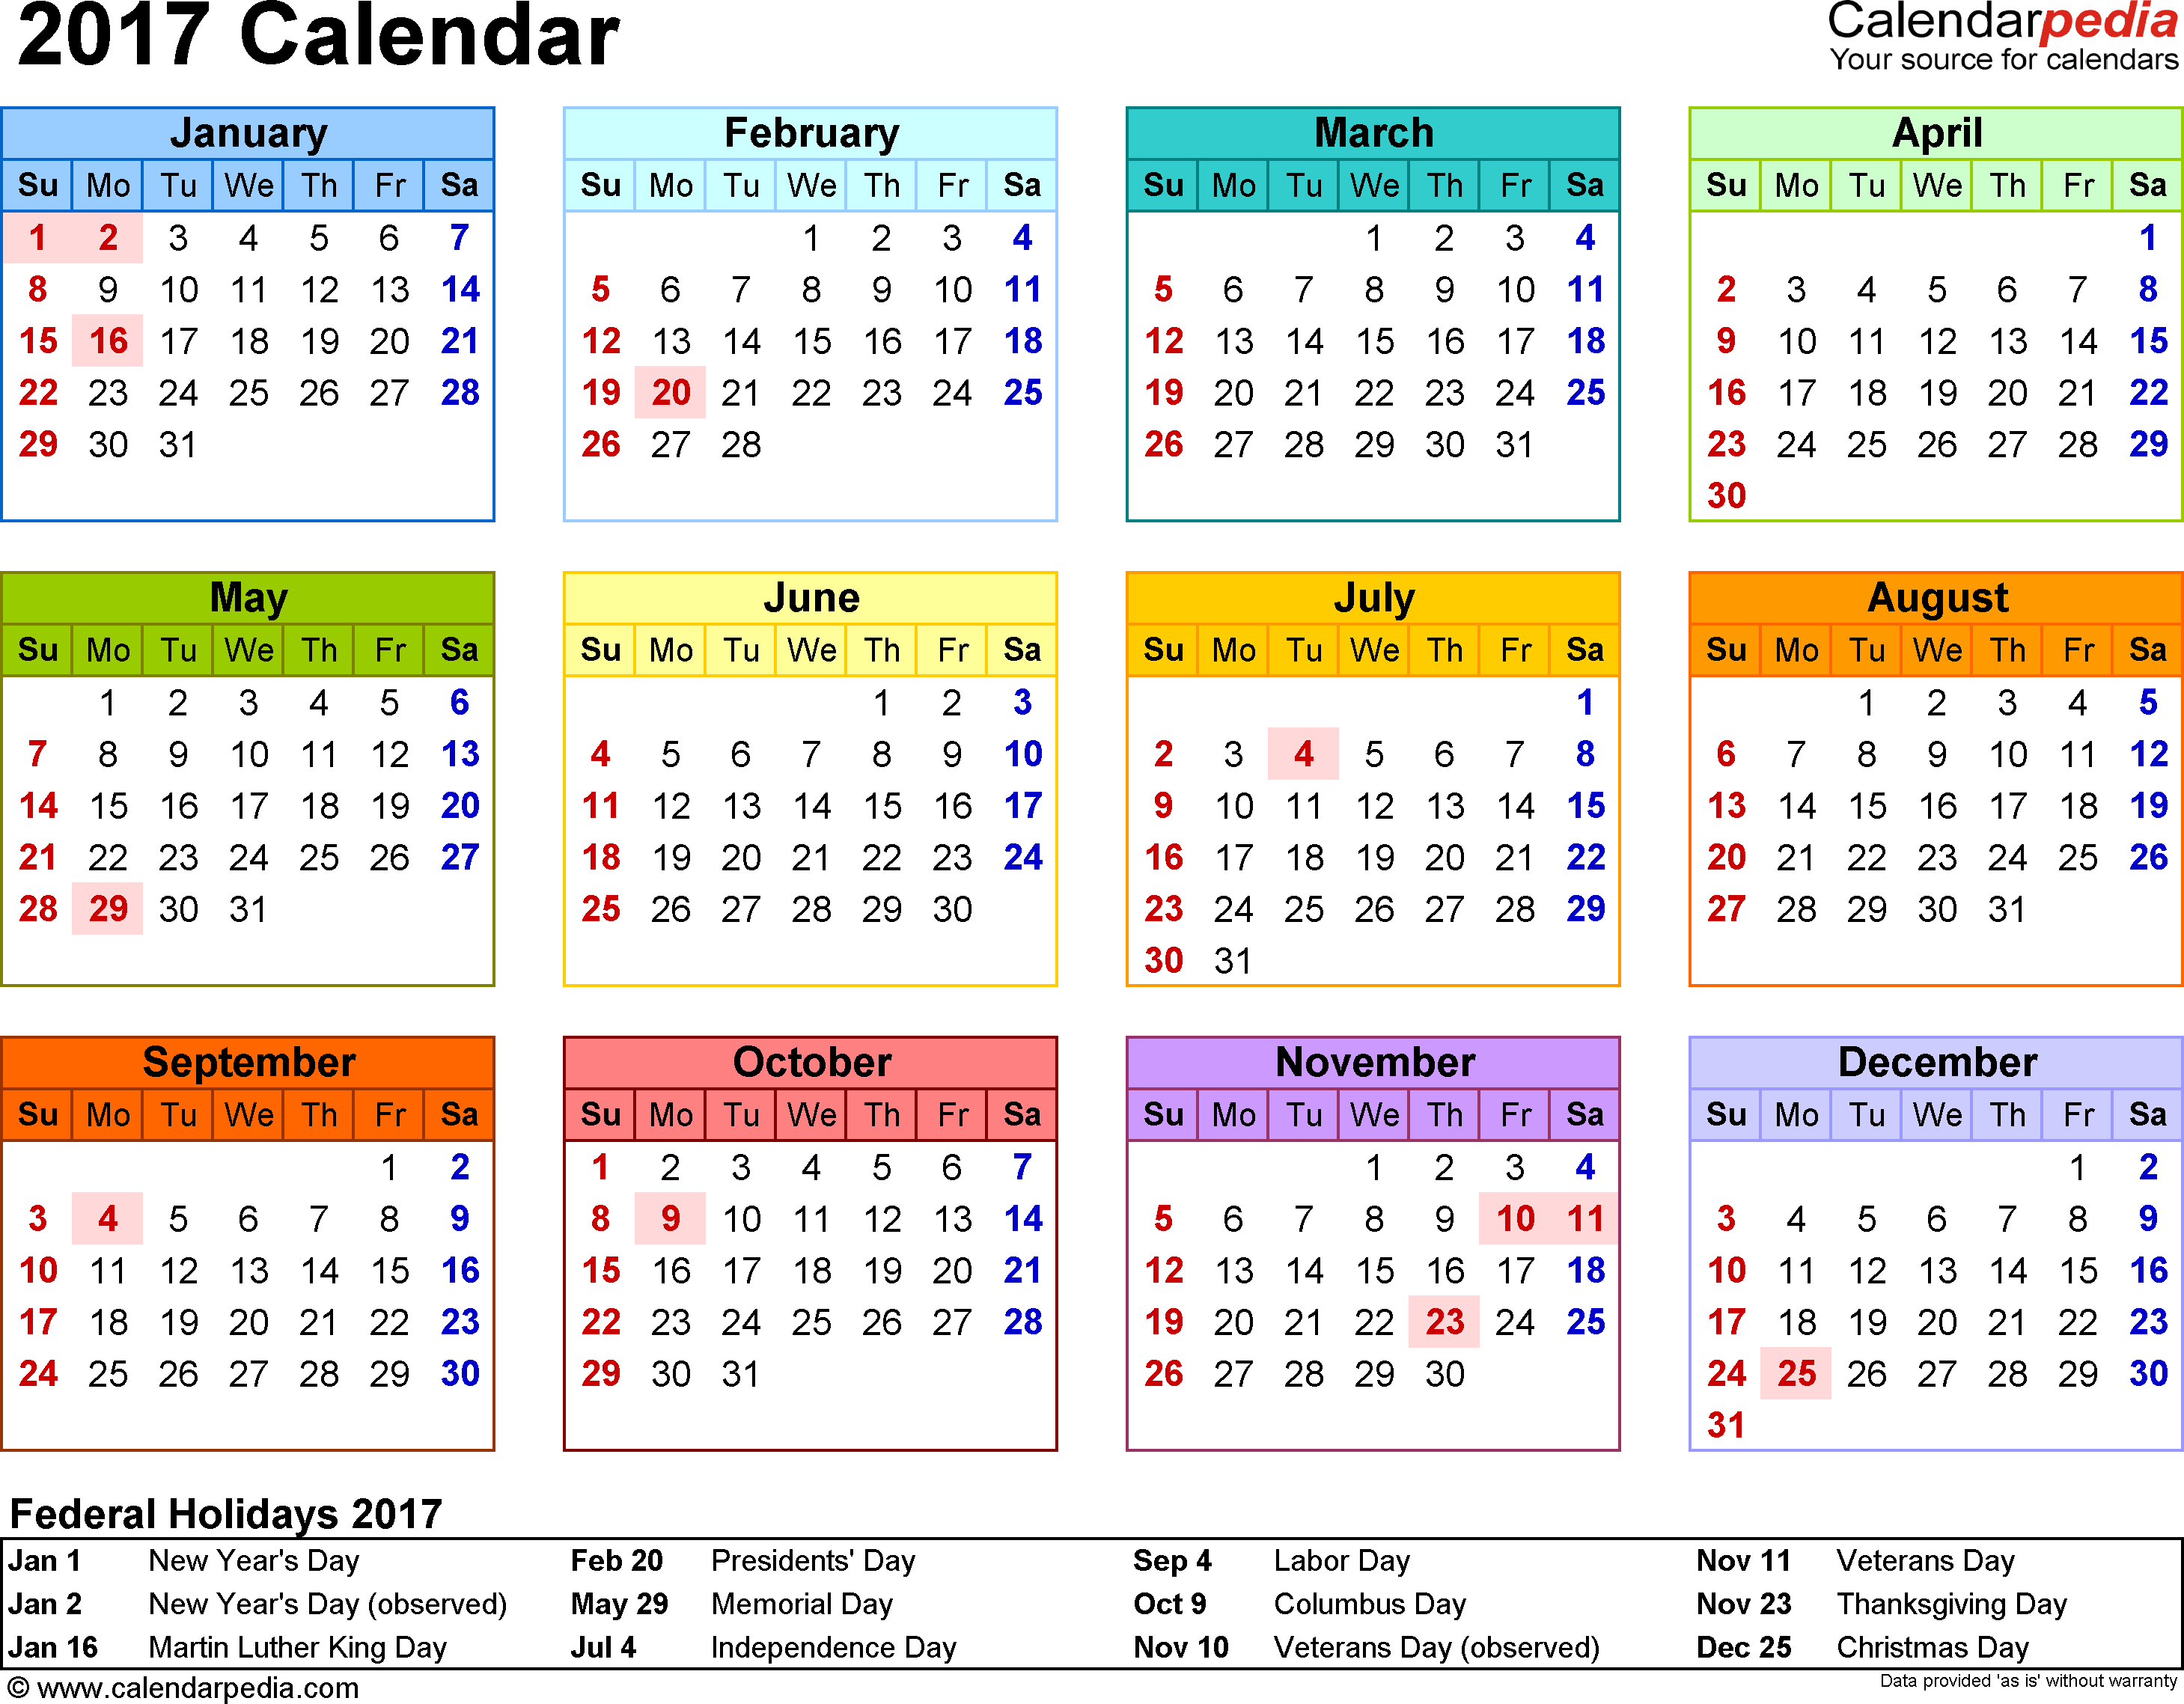 Template 8: 2017 Calendar For Word, Year At A Glance, 1 Page